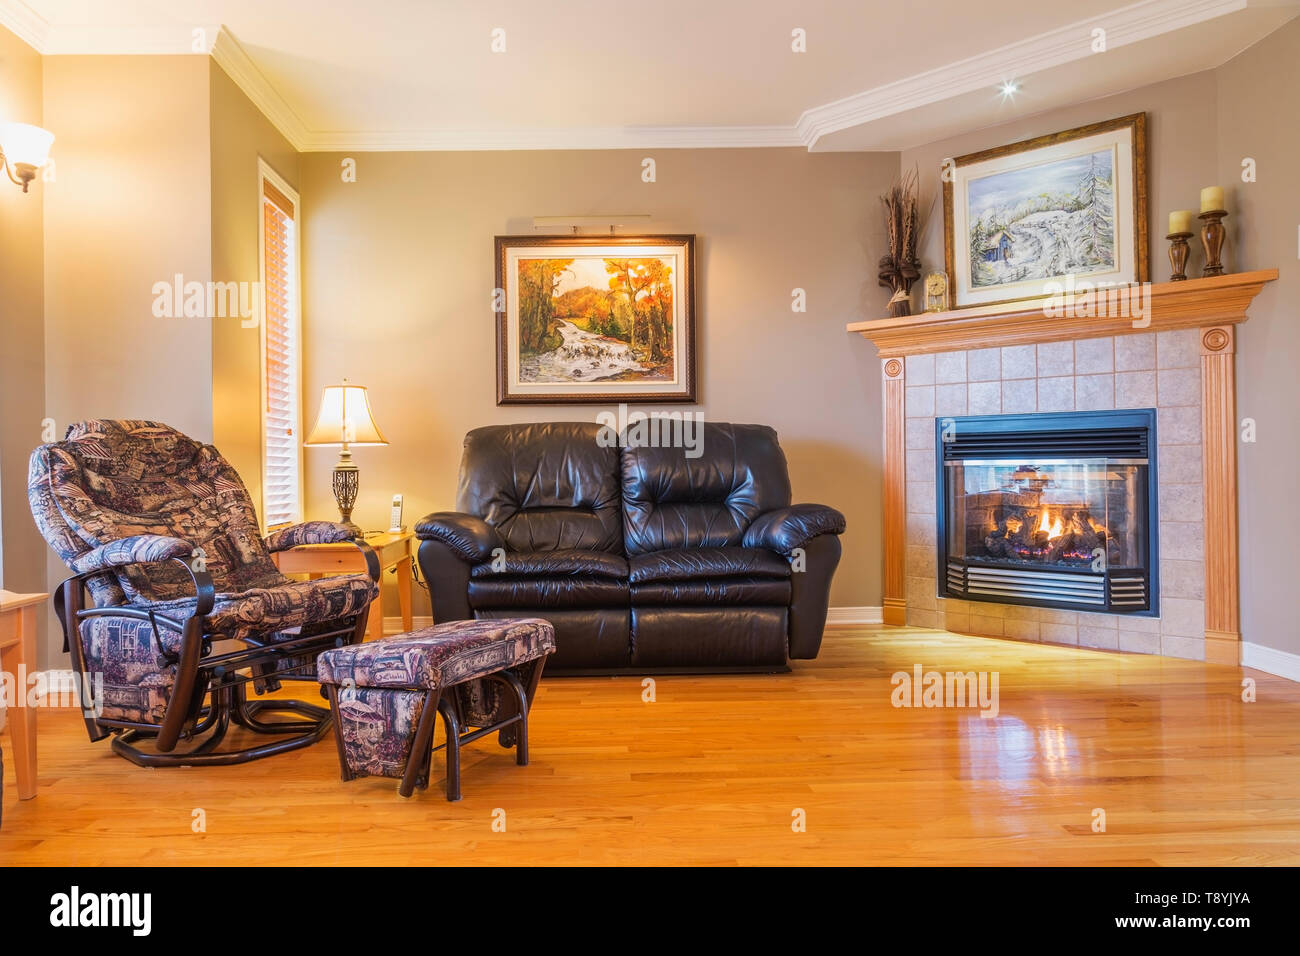 Black leather sofa and reclining armchair in living room with gas fireplace and oakwood floorboards inside a country cottage style house, Quebec, Canada. This image is property released. CUPR0340 Stock Photo